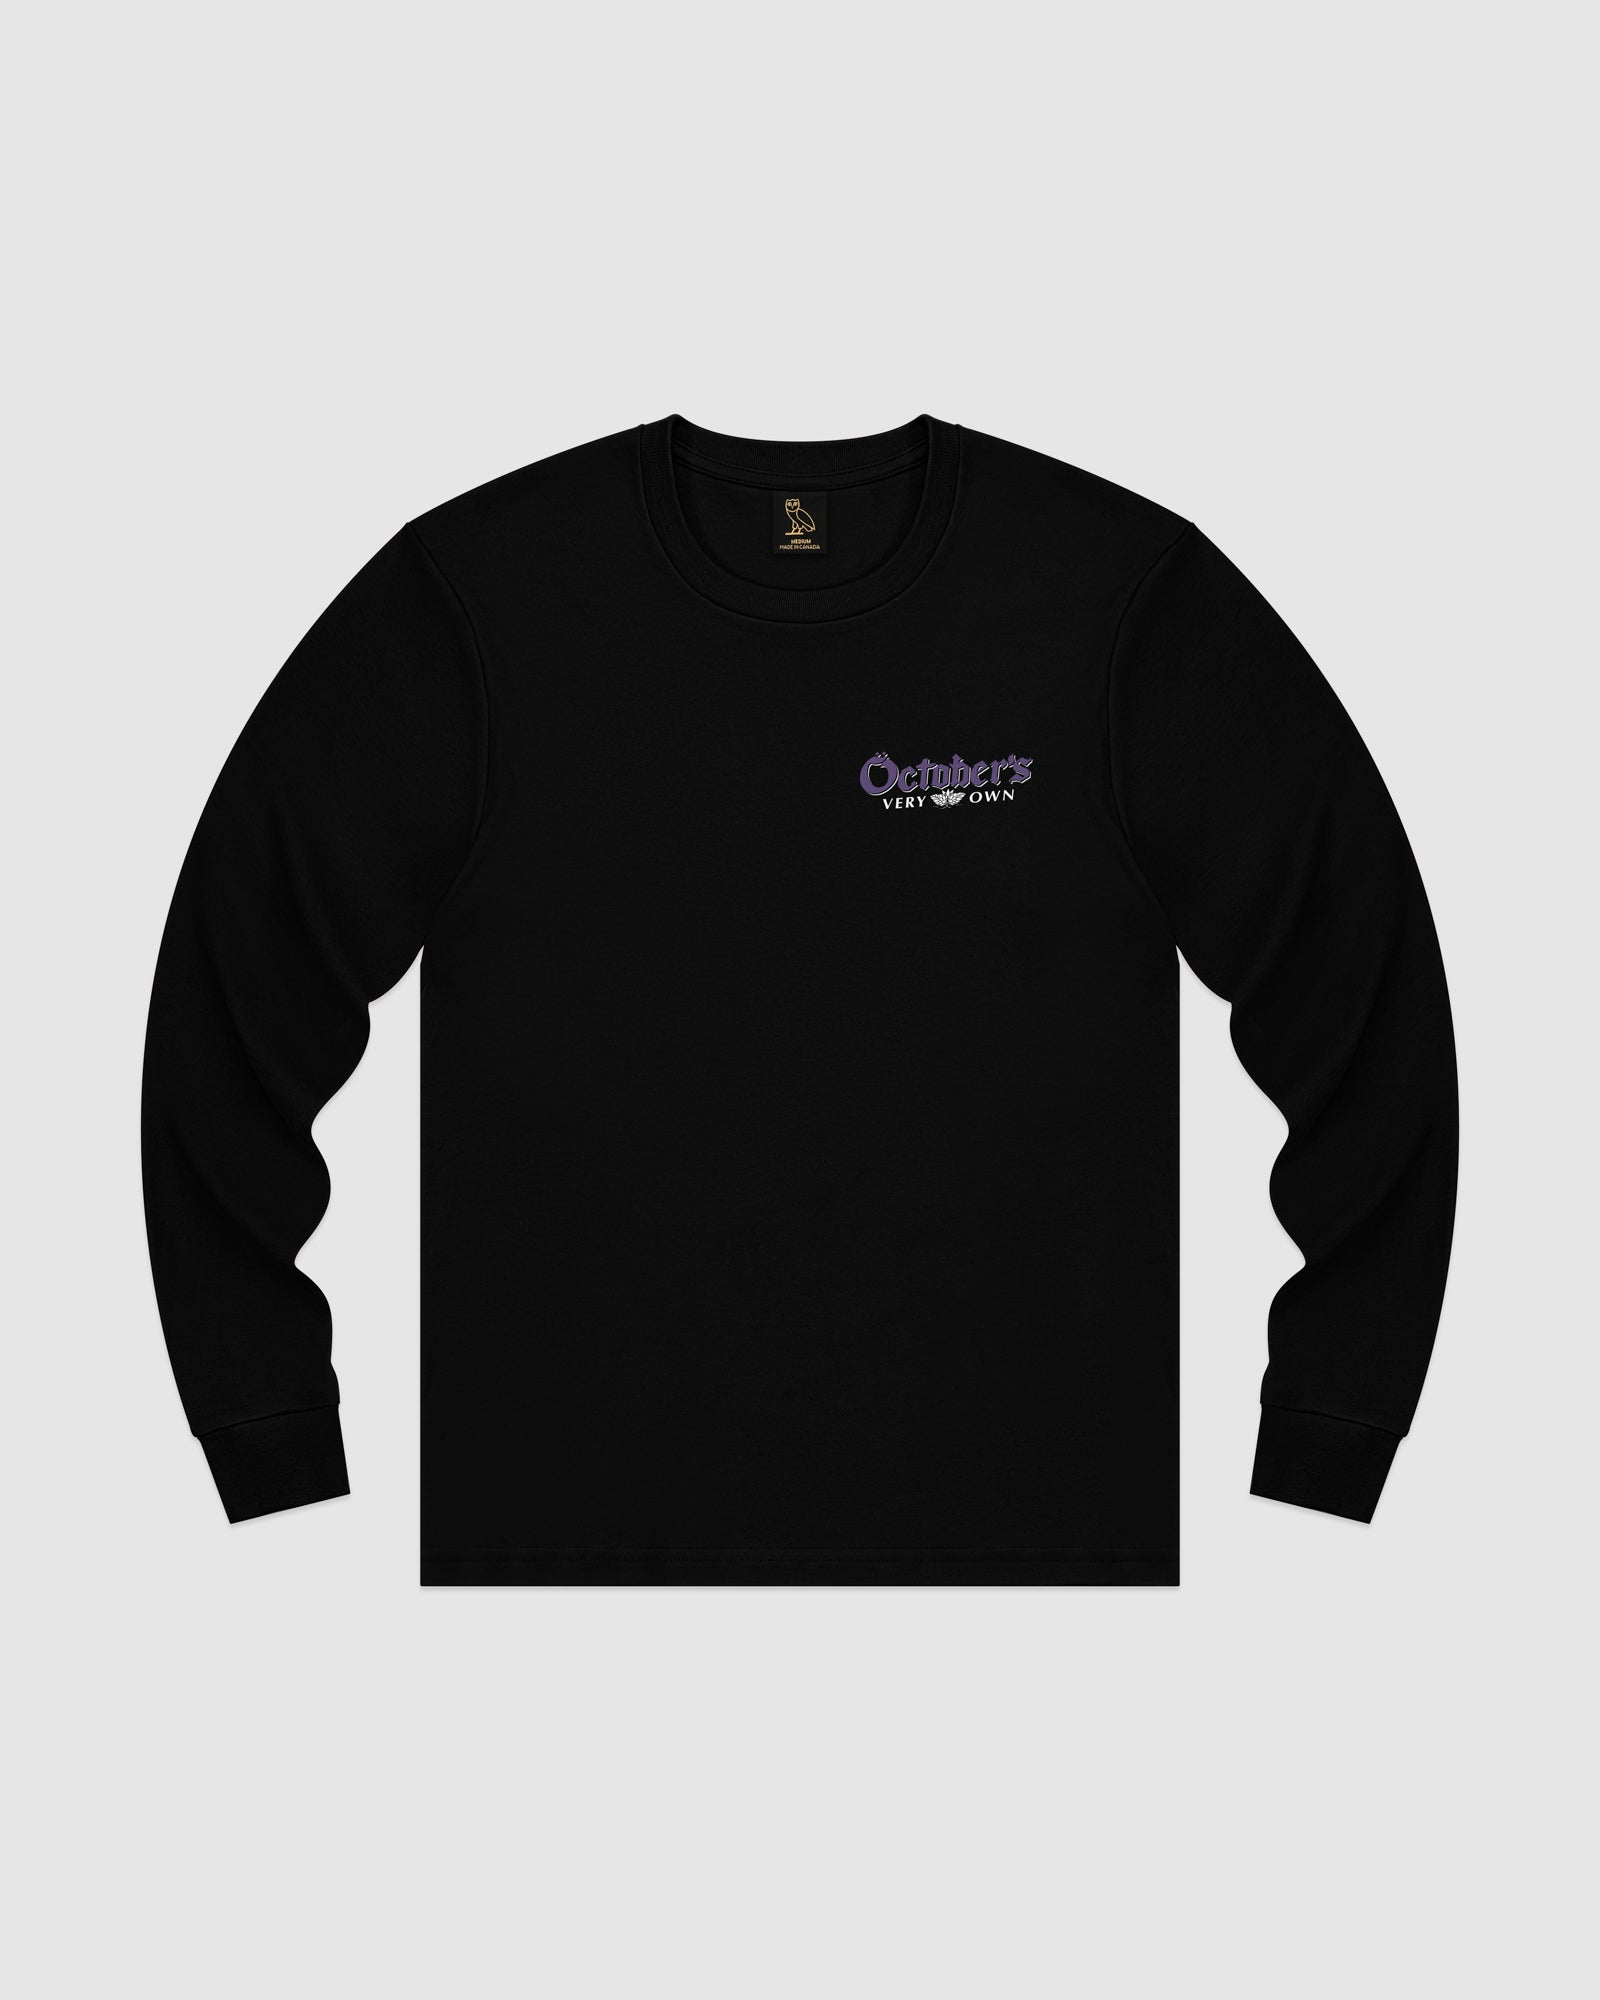 BLACKLETTER WORDMARK LONGSLEEVE T-SHIRT - BLACK IMAGE #1